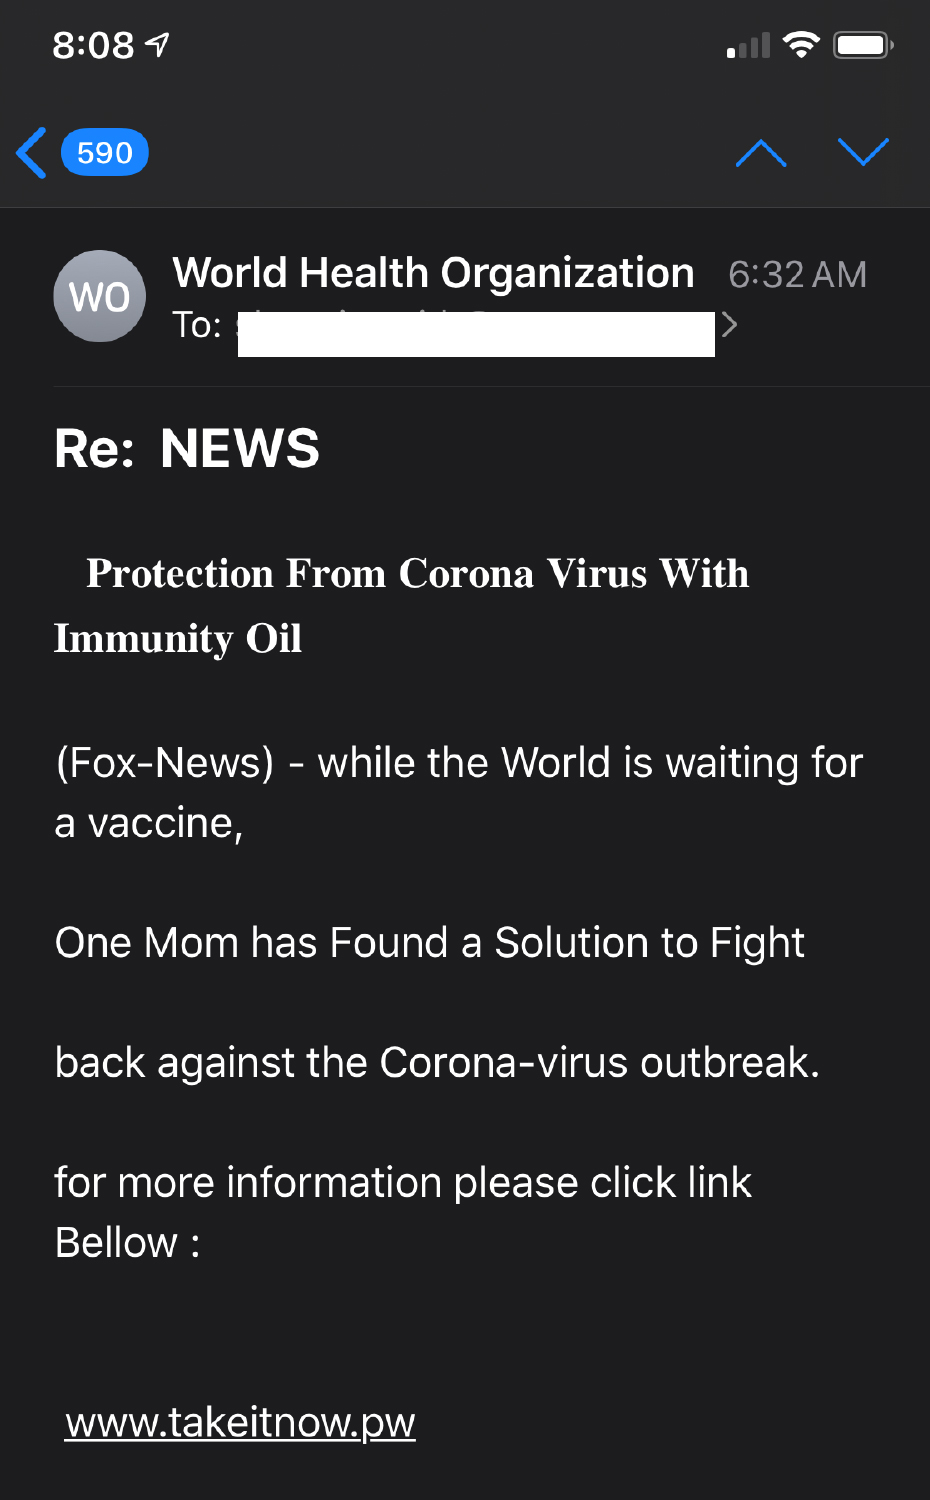 Image of scam email received by Washingtonian